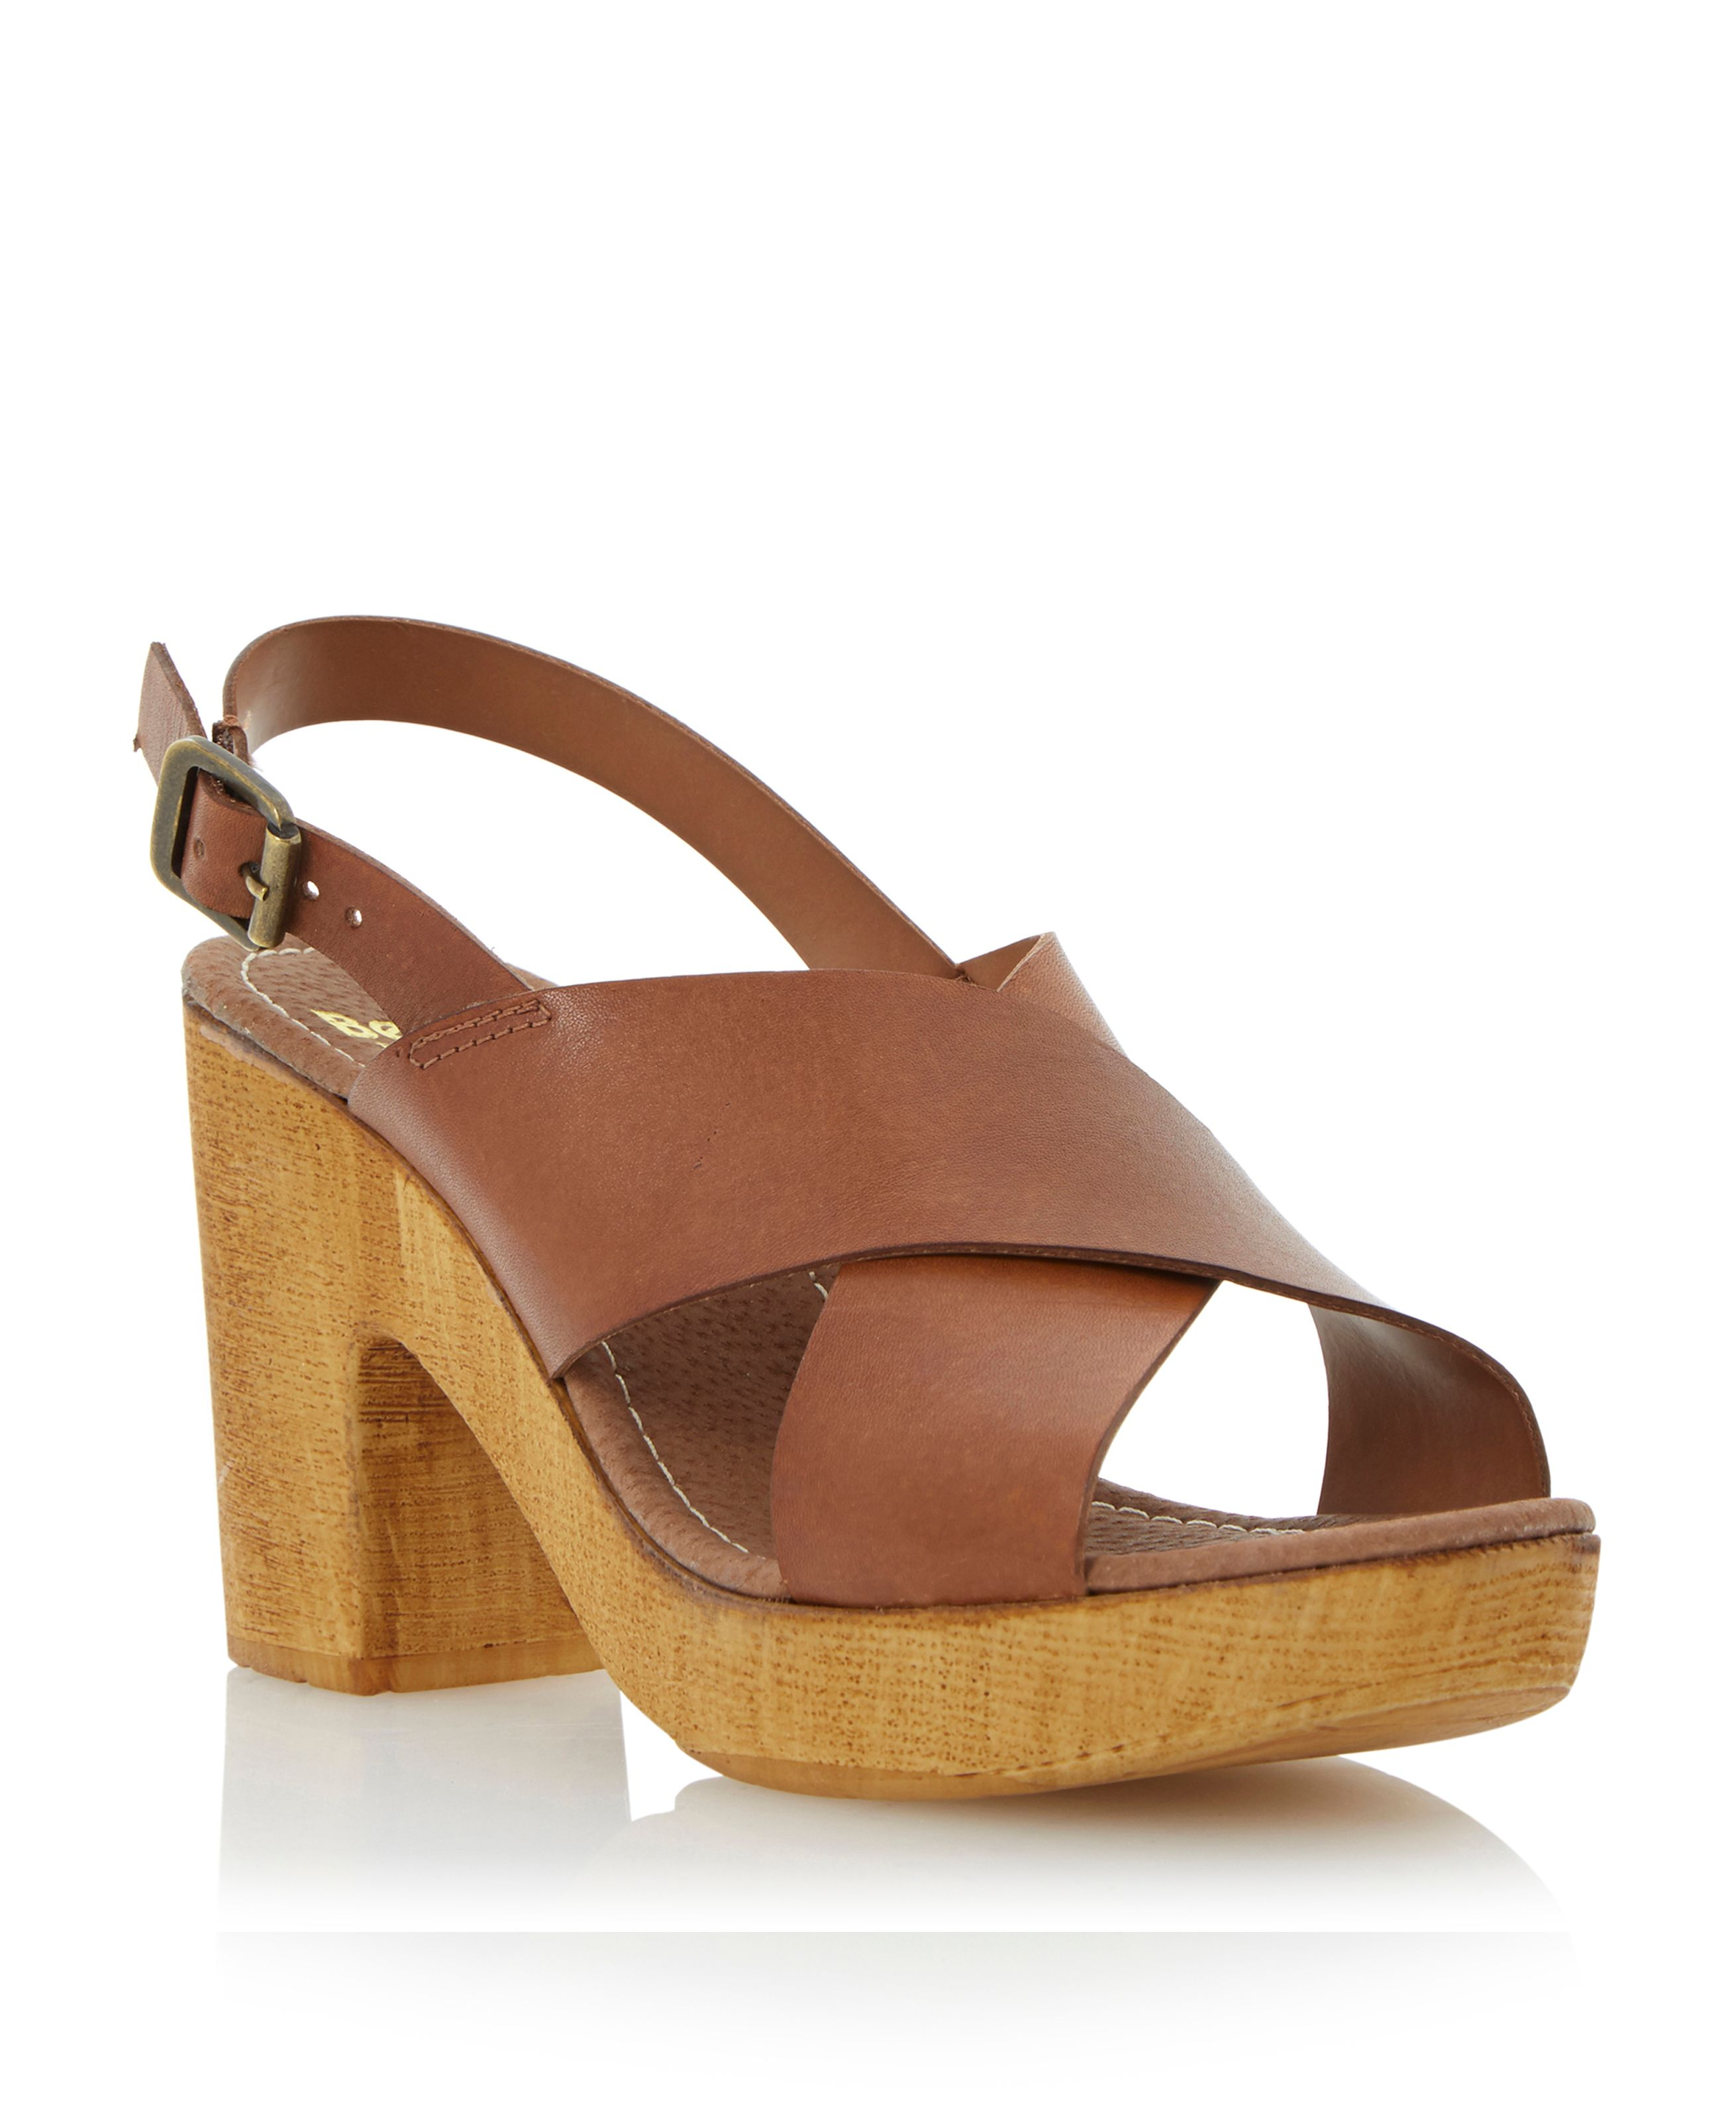 Heeley leather cross vamp heeled sandals